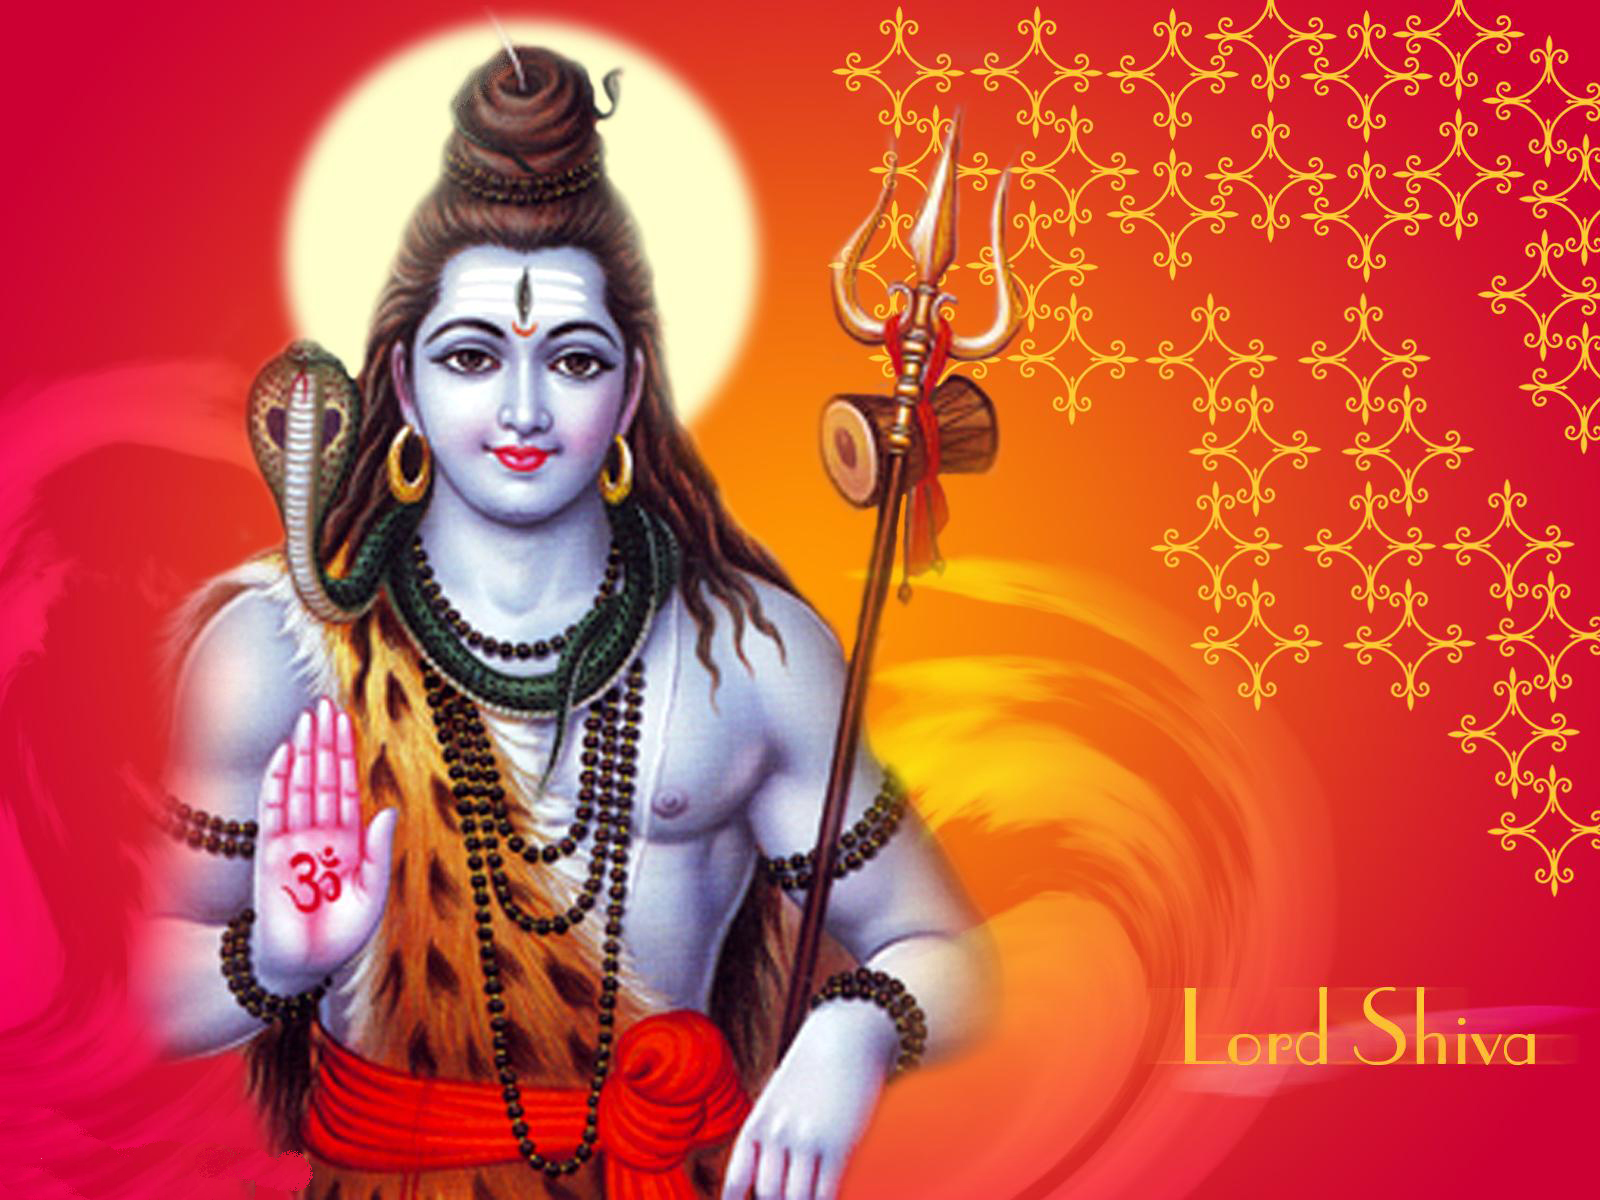 lord shiva wallpapers hd download for desktop Hot Wallpapers 1600x1200